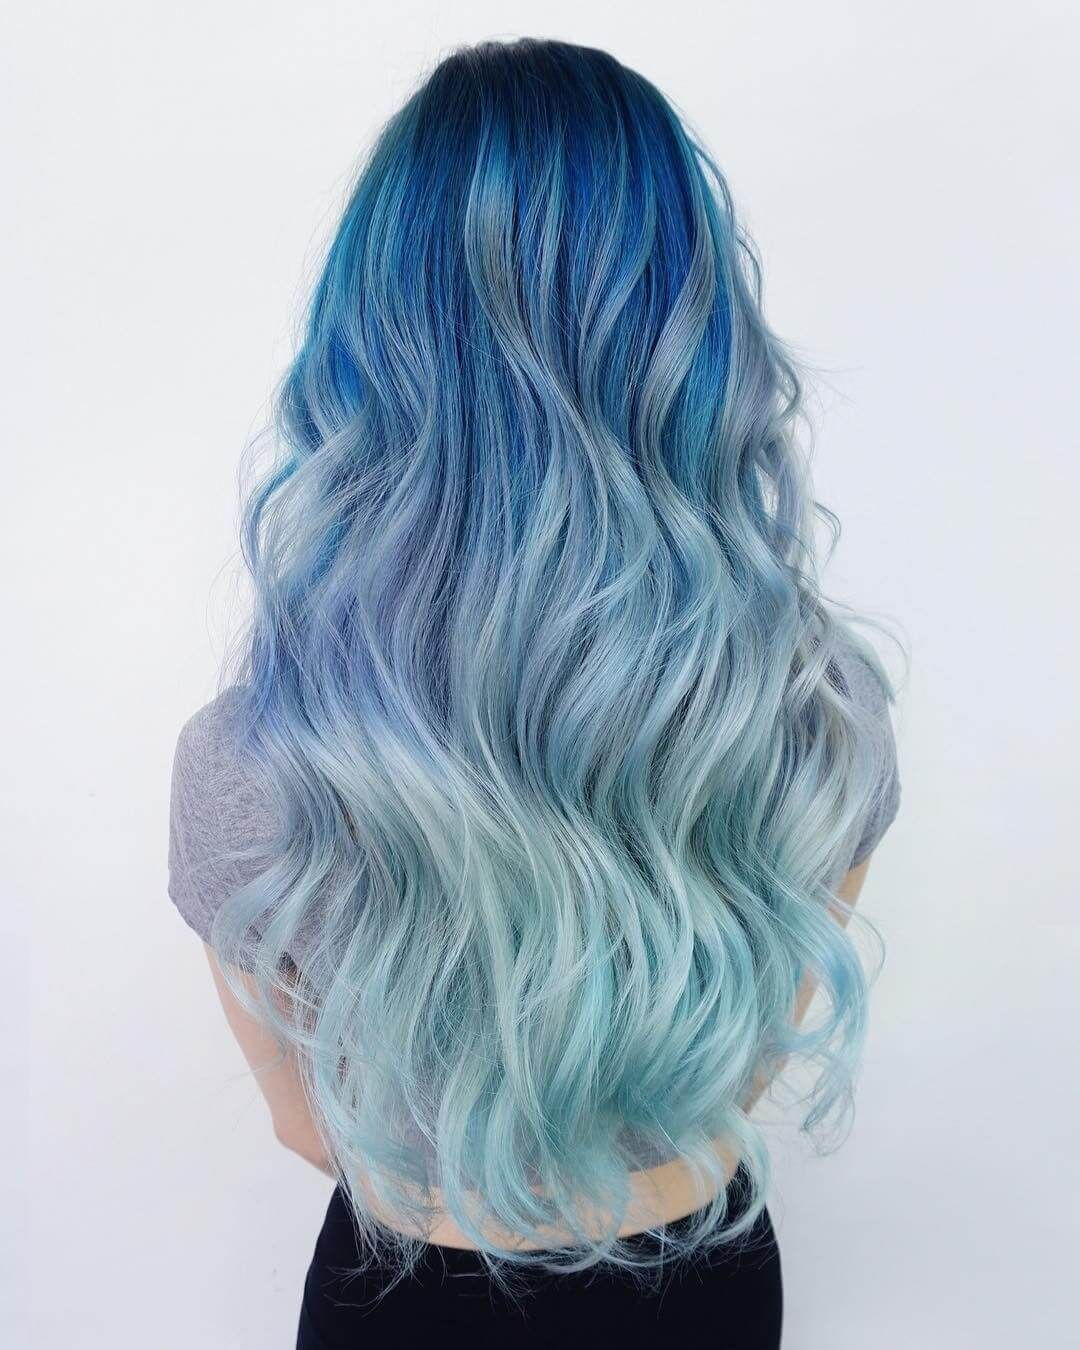 Super Cool Blue Ombre Hairstyles Blue ombre Ombre and Hair